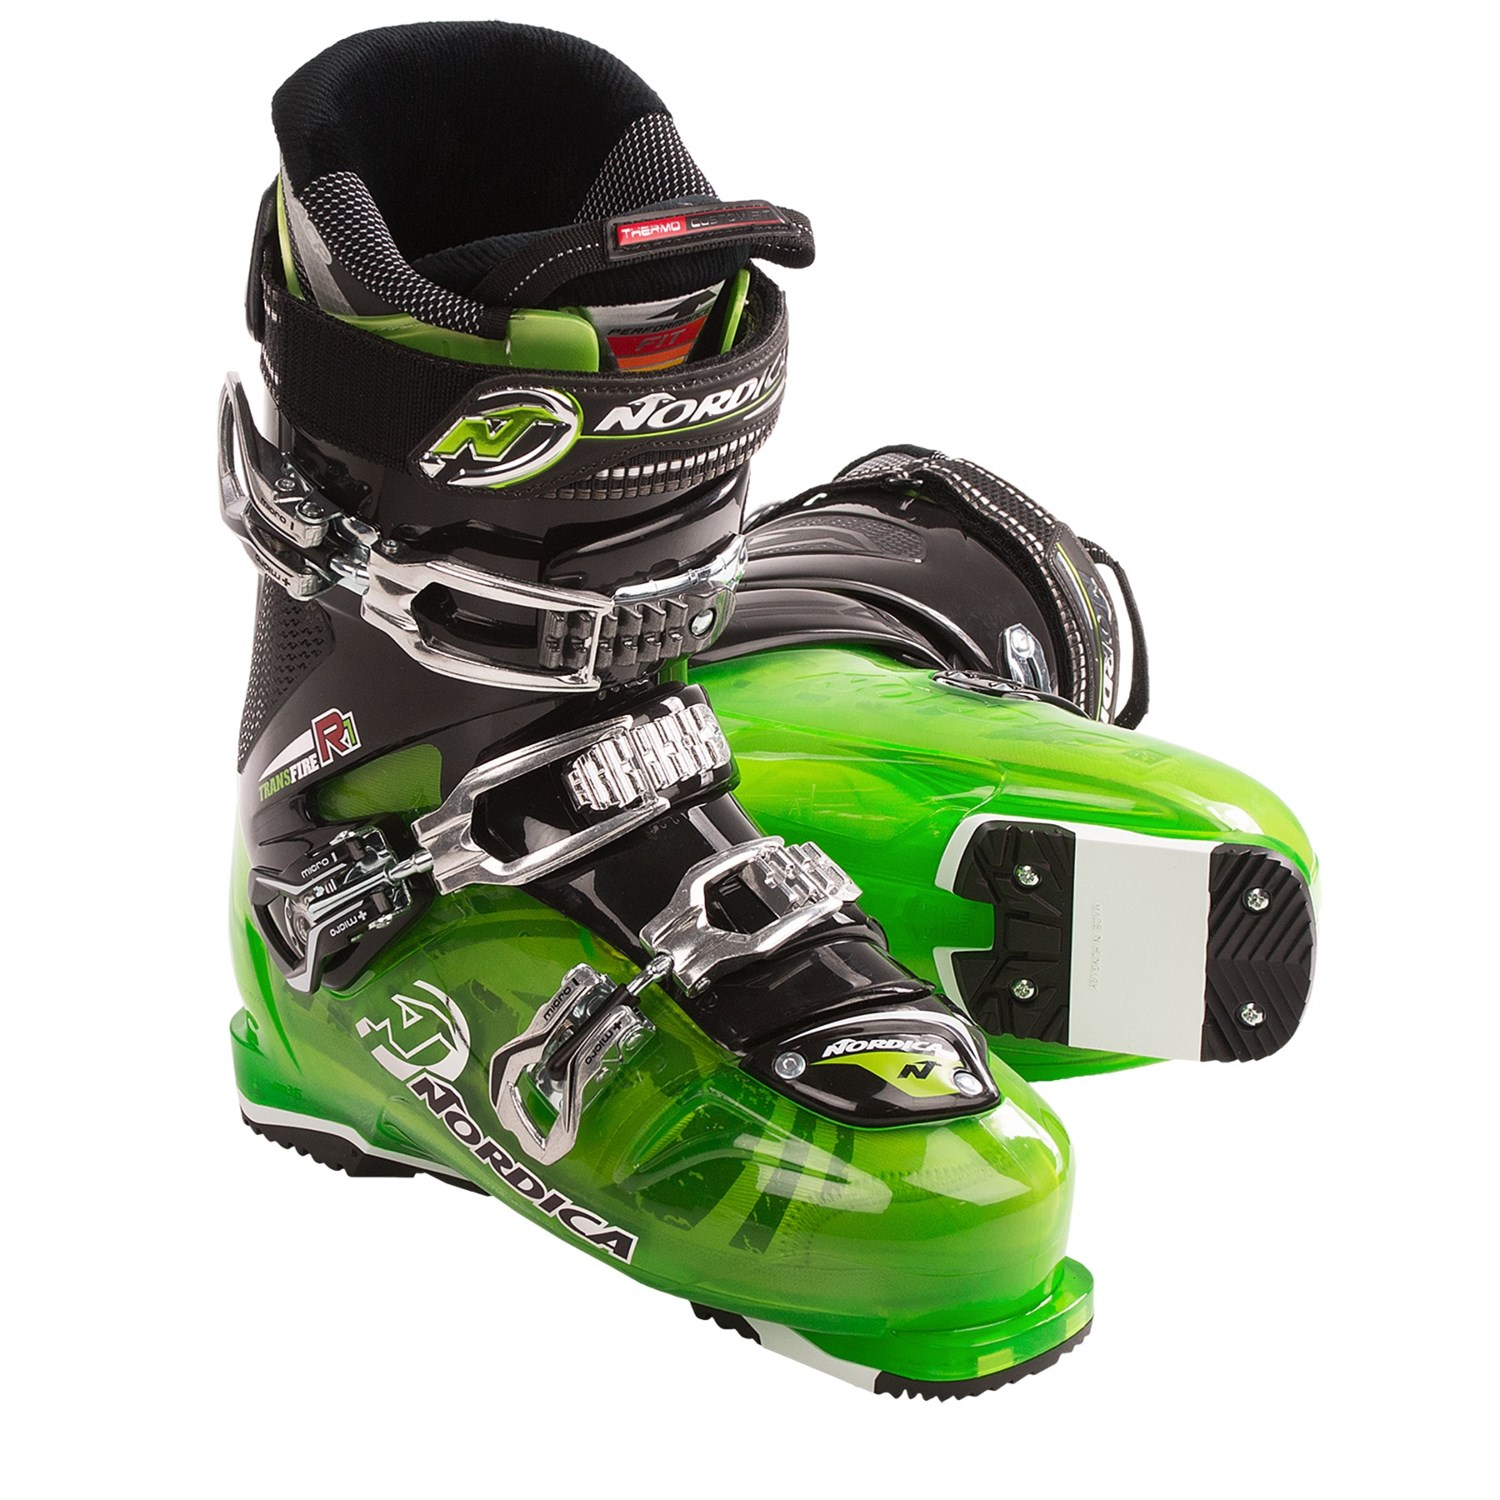 buy nordica transfire r1 ski boots for cing